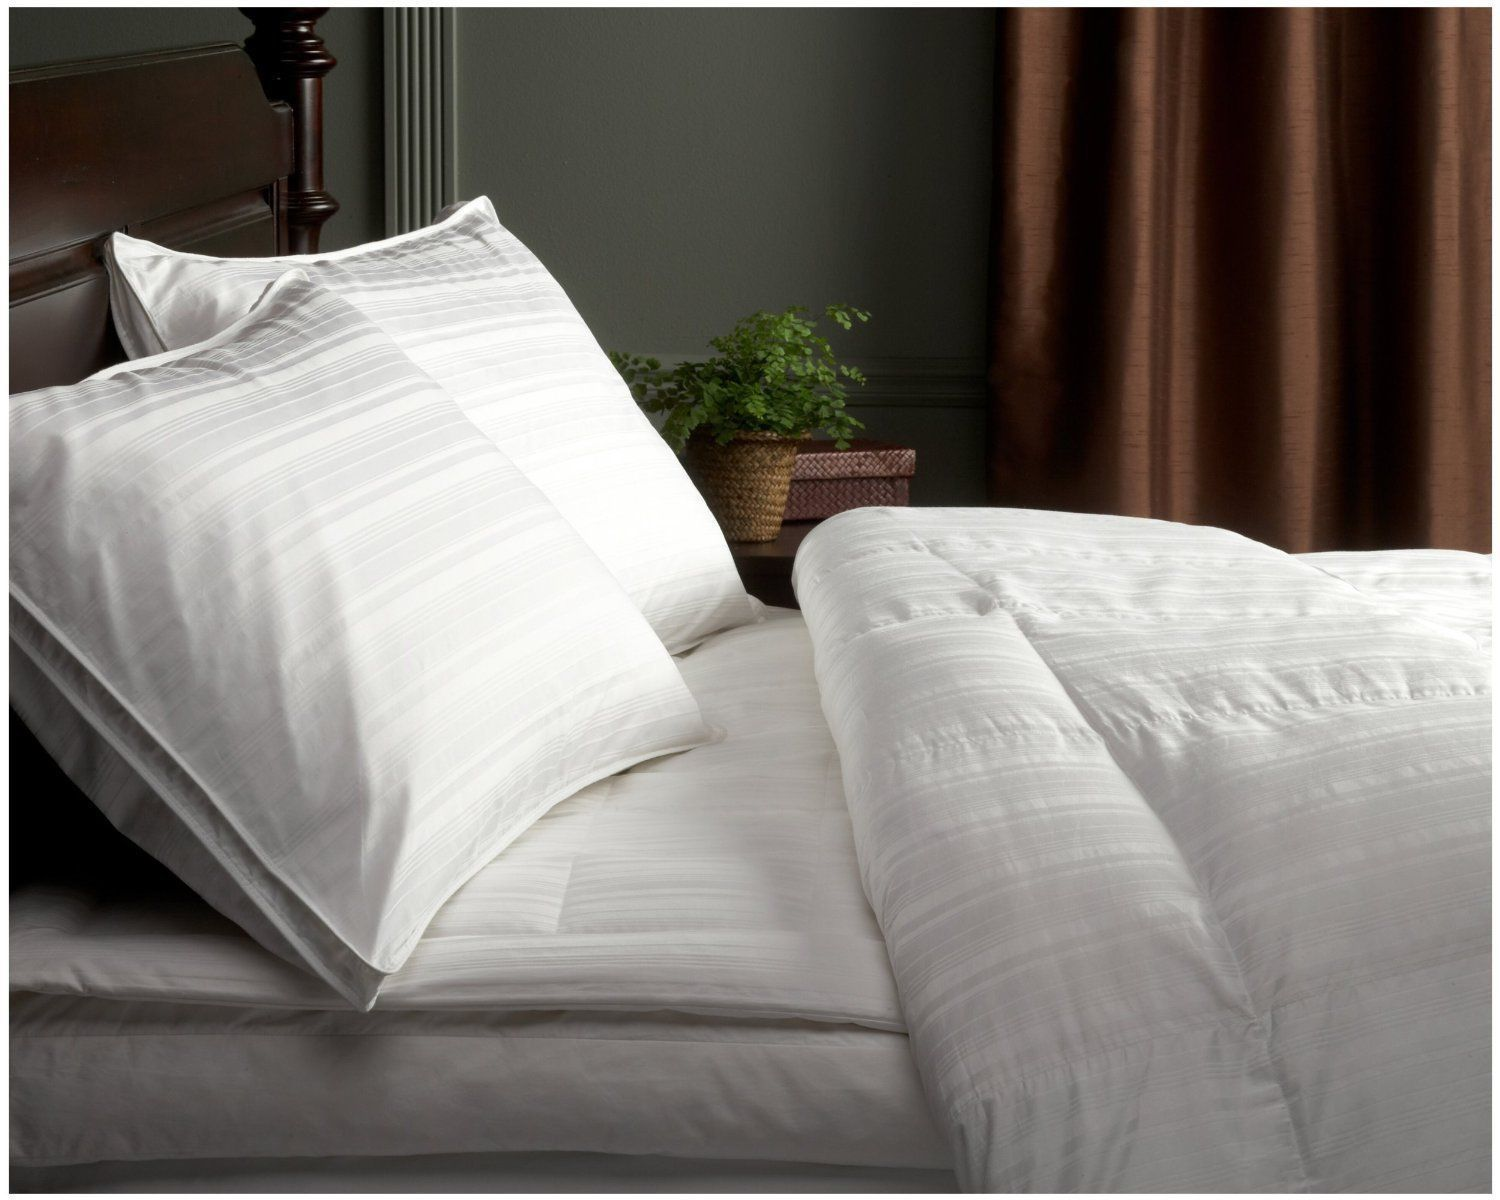 Pacific Coast Comforter | Fluffy Comforters | Down Feather Comforter